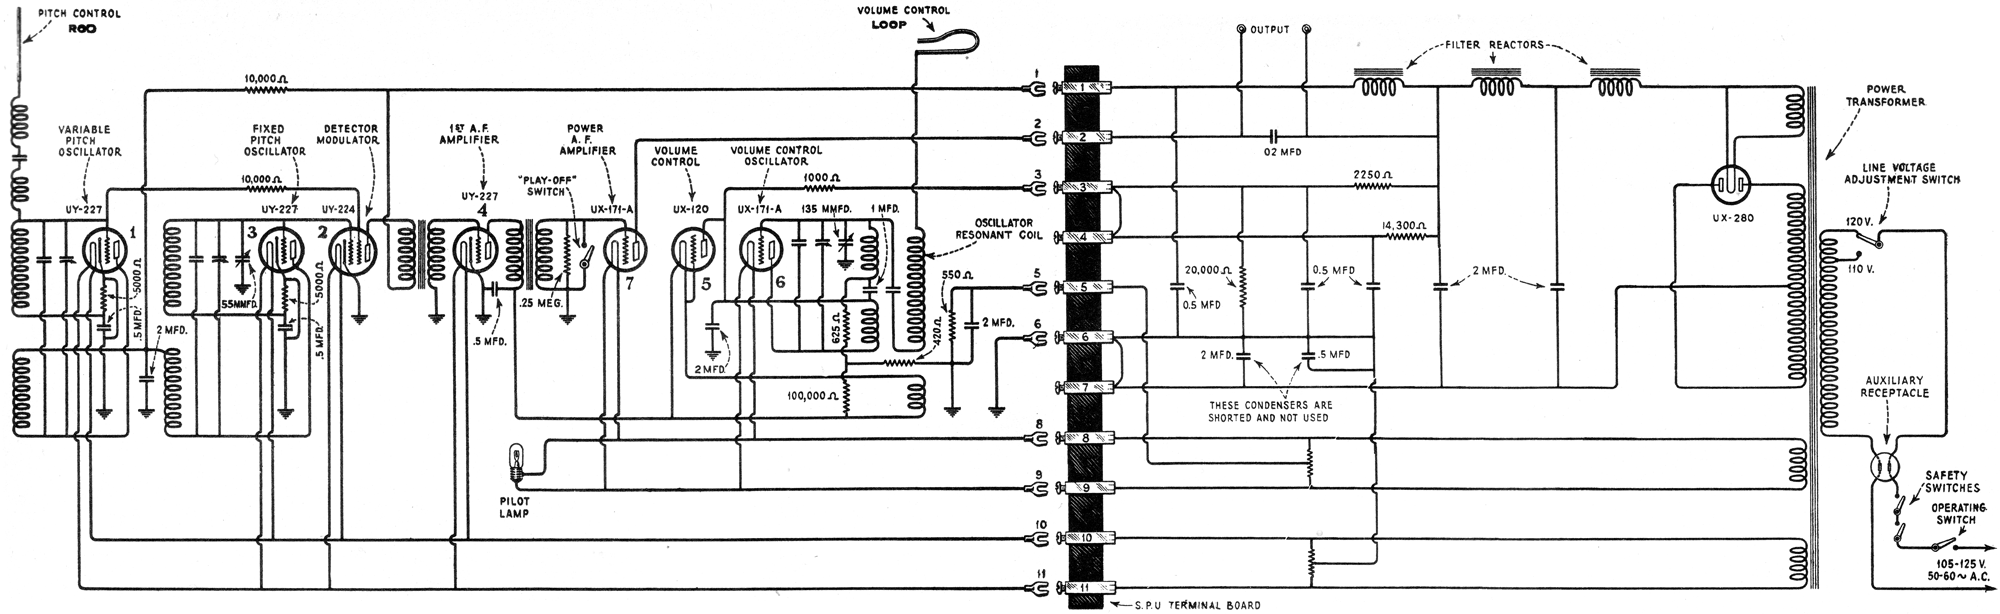 Schematics And Manuals Diagram Rca Theremin Schematic